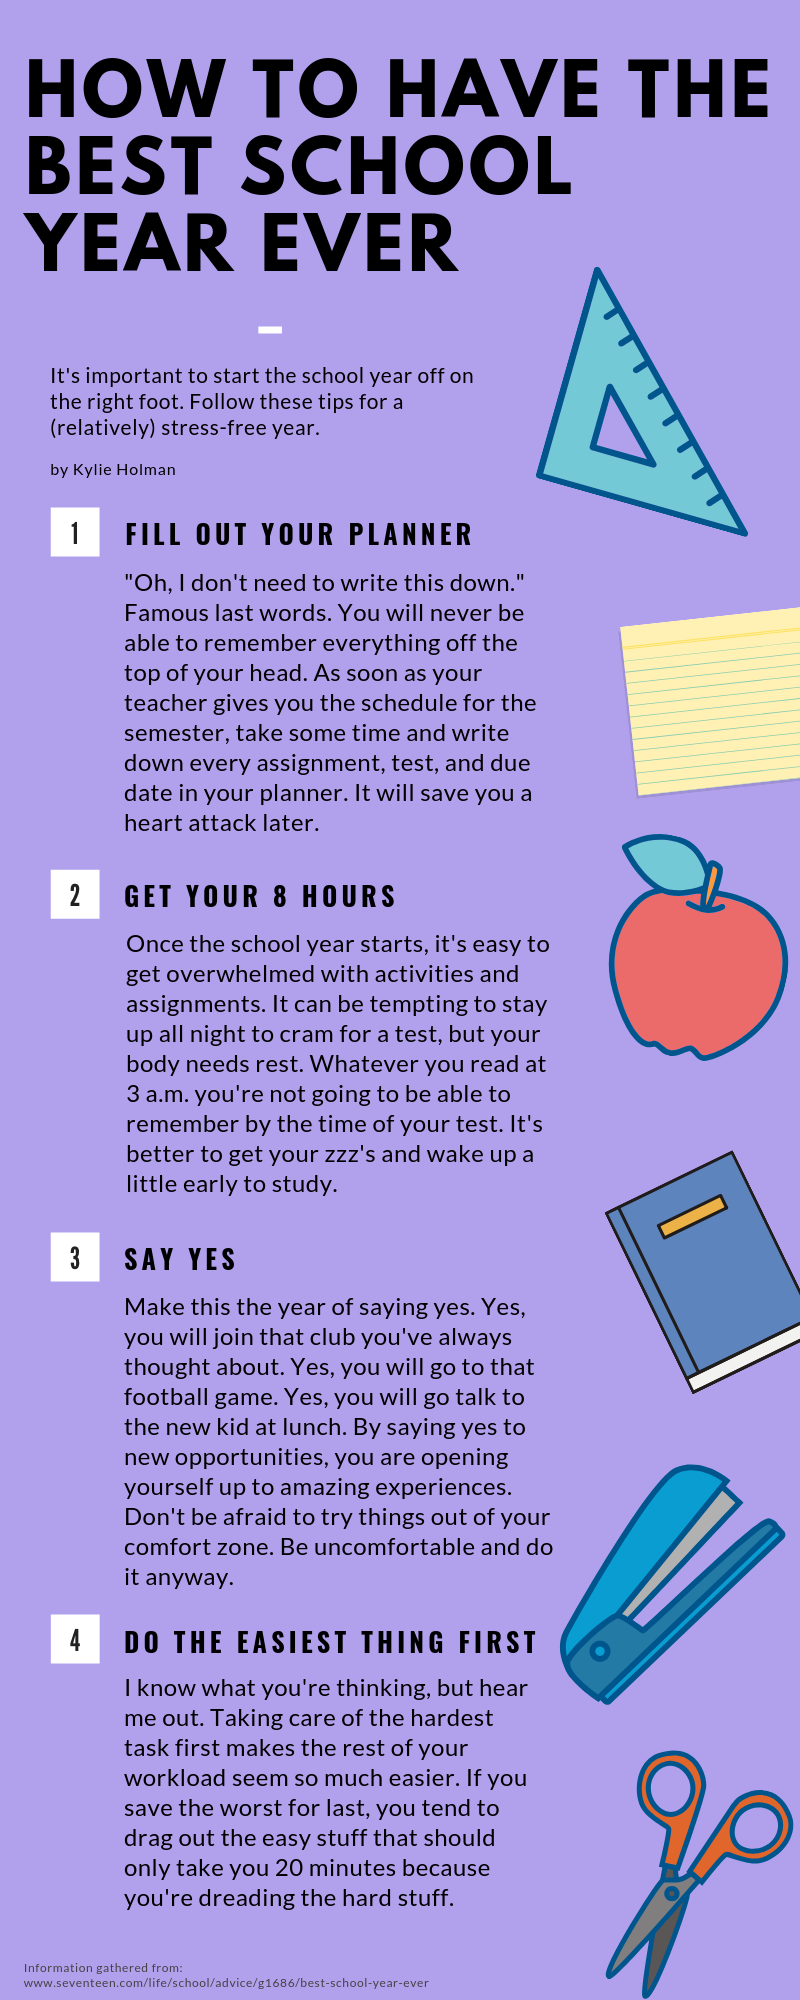 how to have the best school year ever